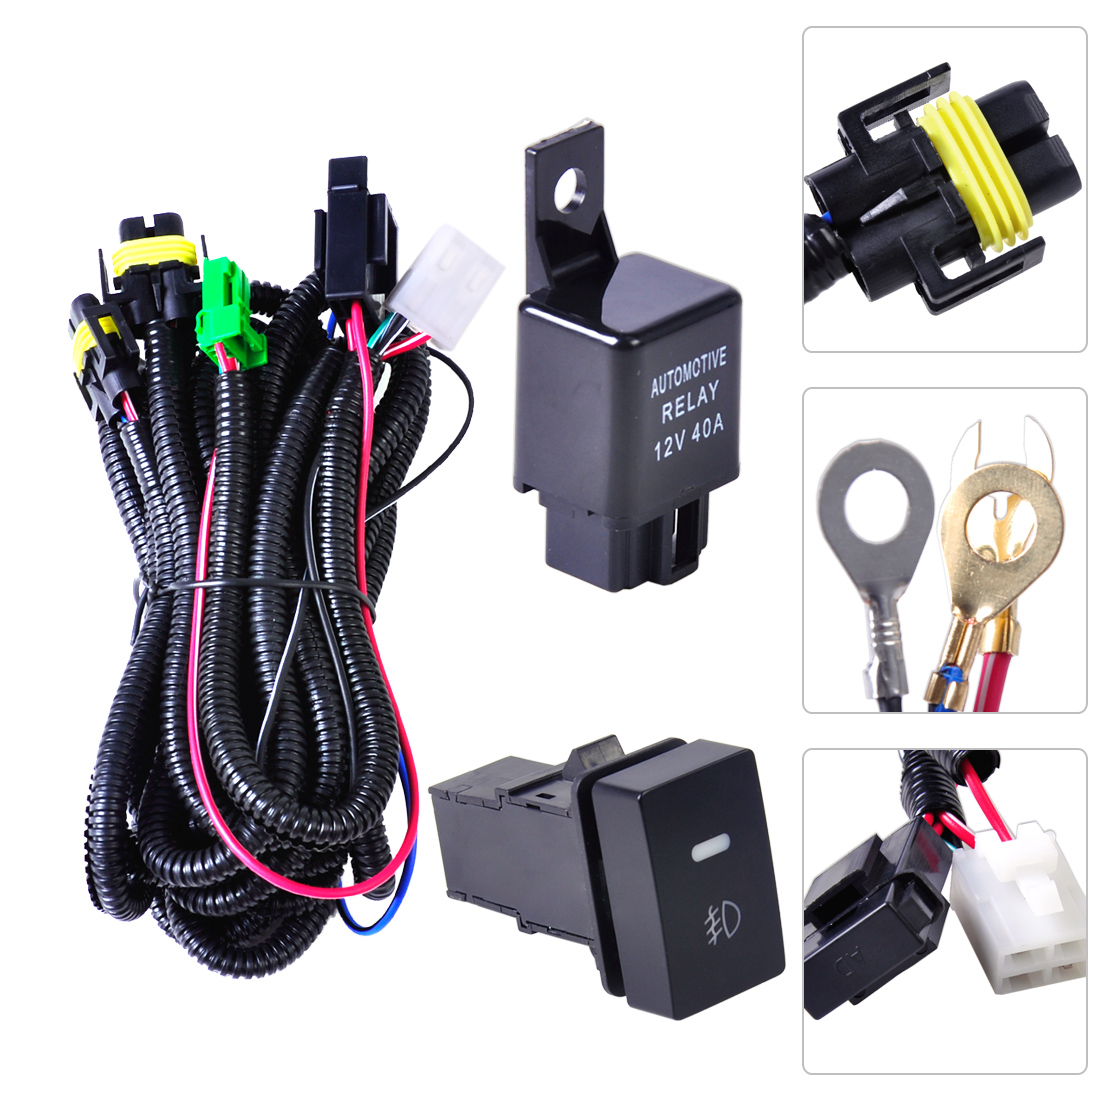 dwcx wiring harness sockets wire switch for h11 fog light lamp for ford focus acura [ 1110 x 1110 Pixel ]